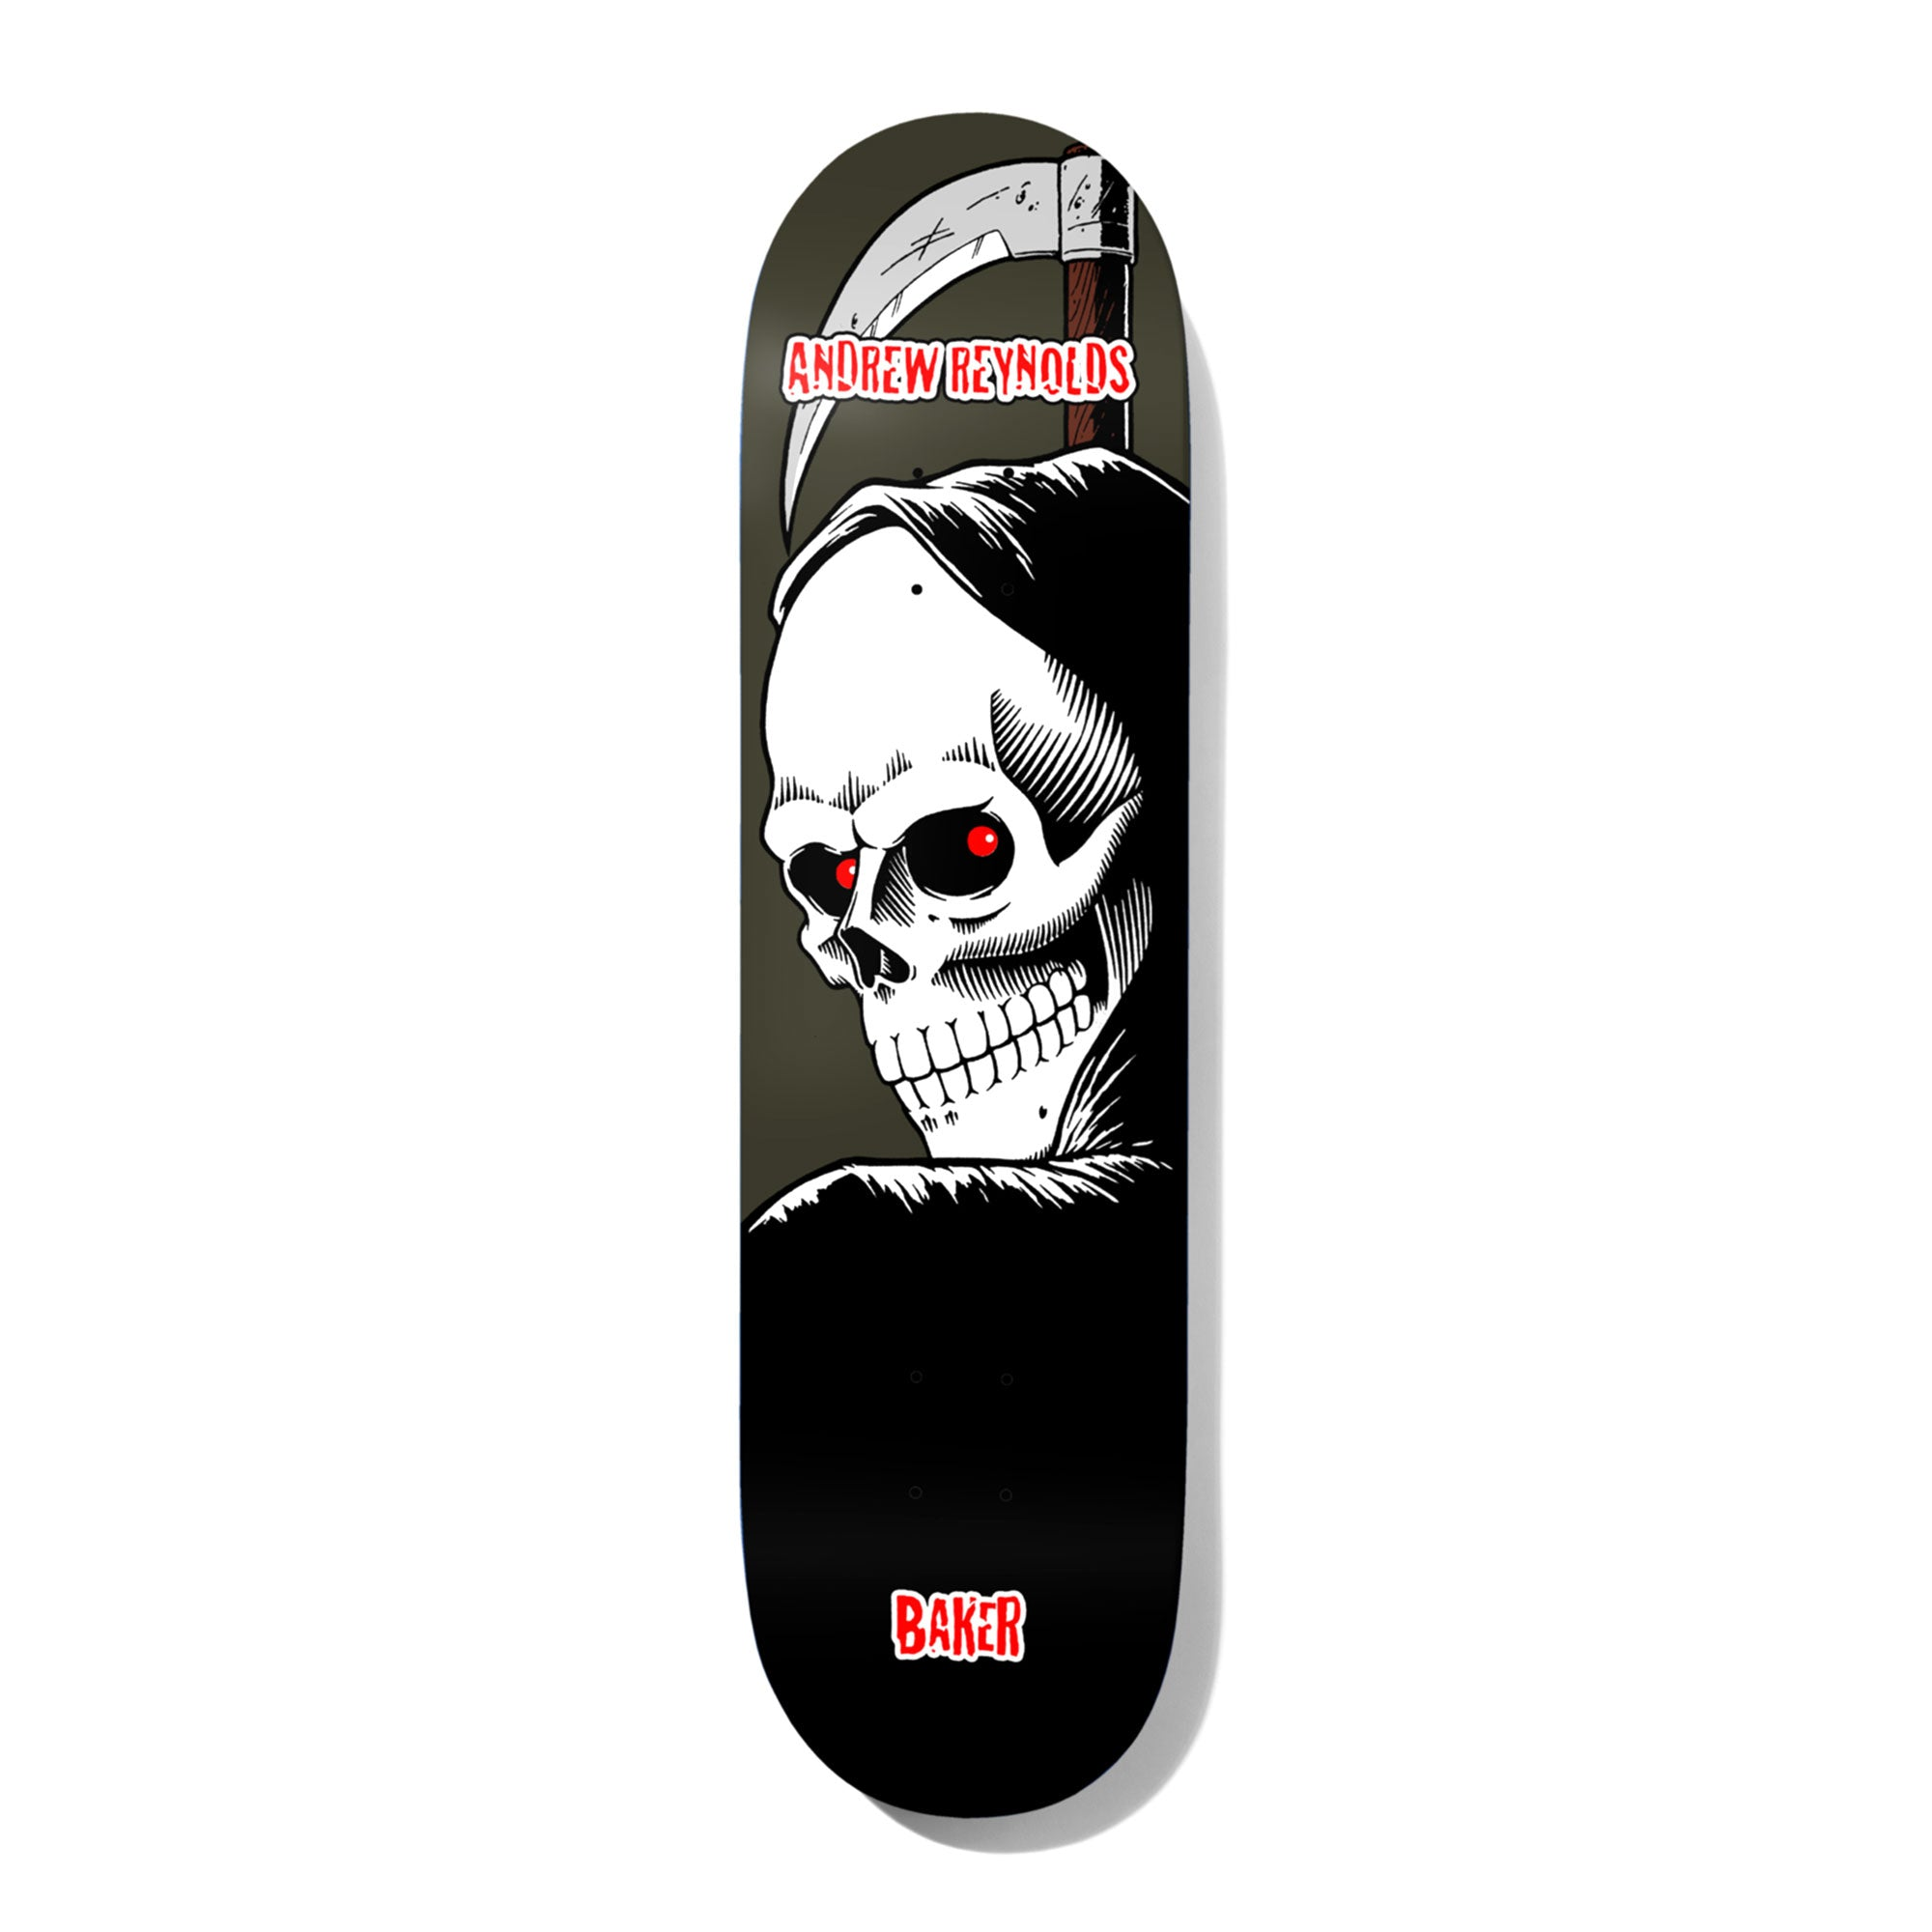 Baker Reynolds Reaper 1 Deck Product Photo #1